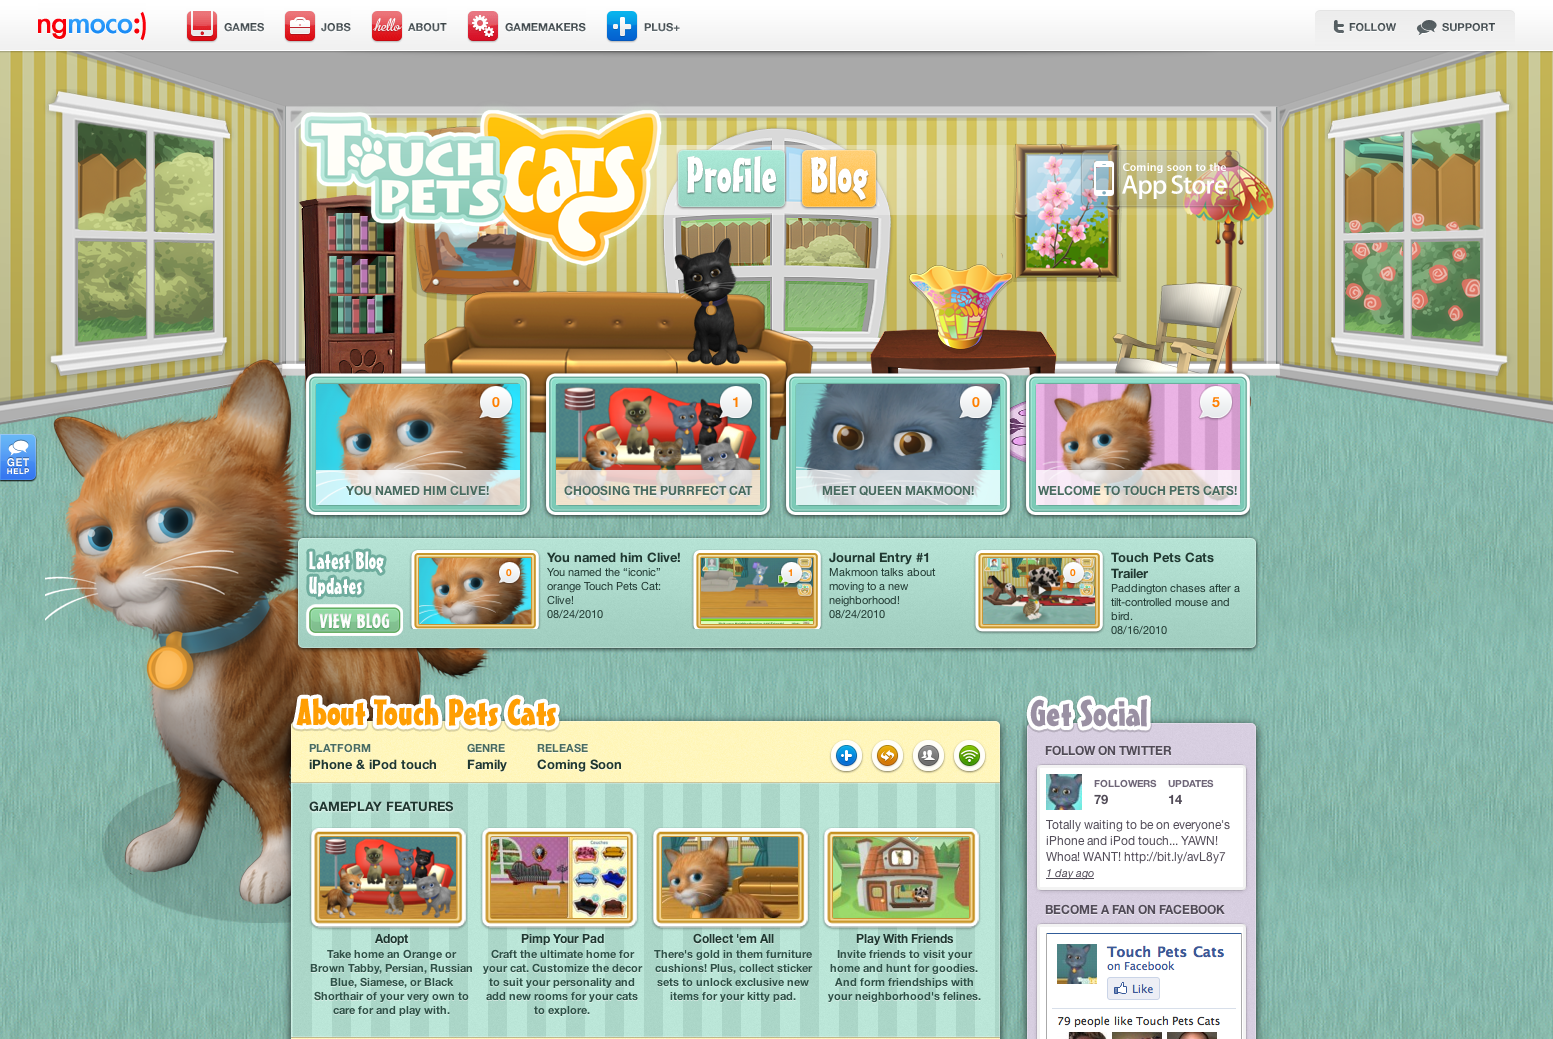 ngmoco:) TouchPets Cats WordPress Theme: Header 1